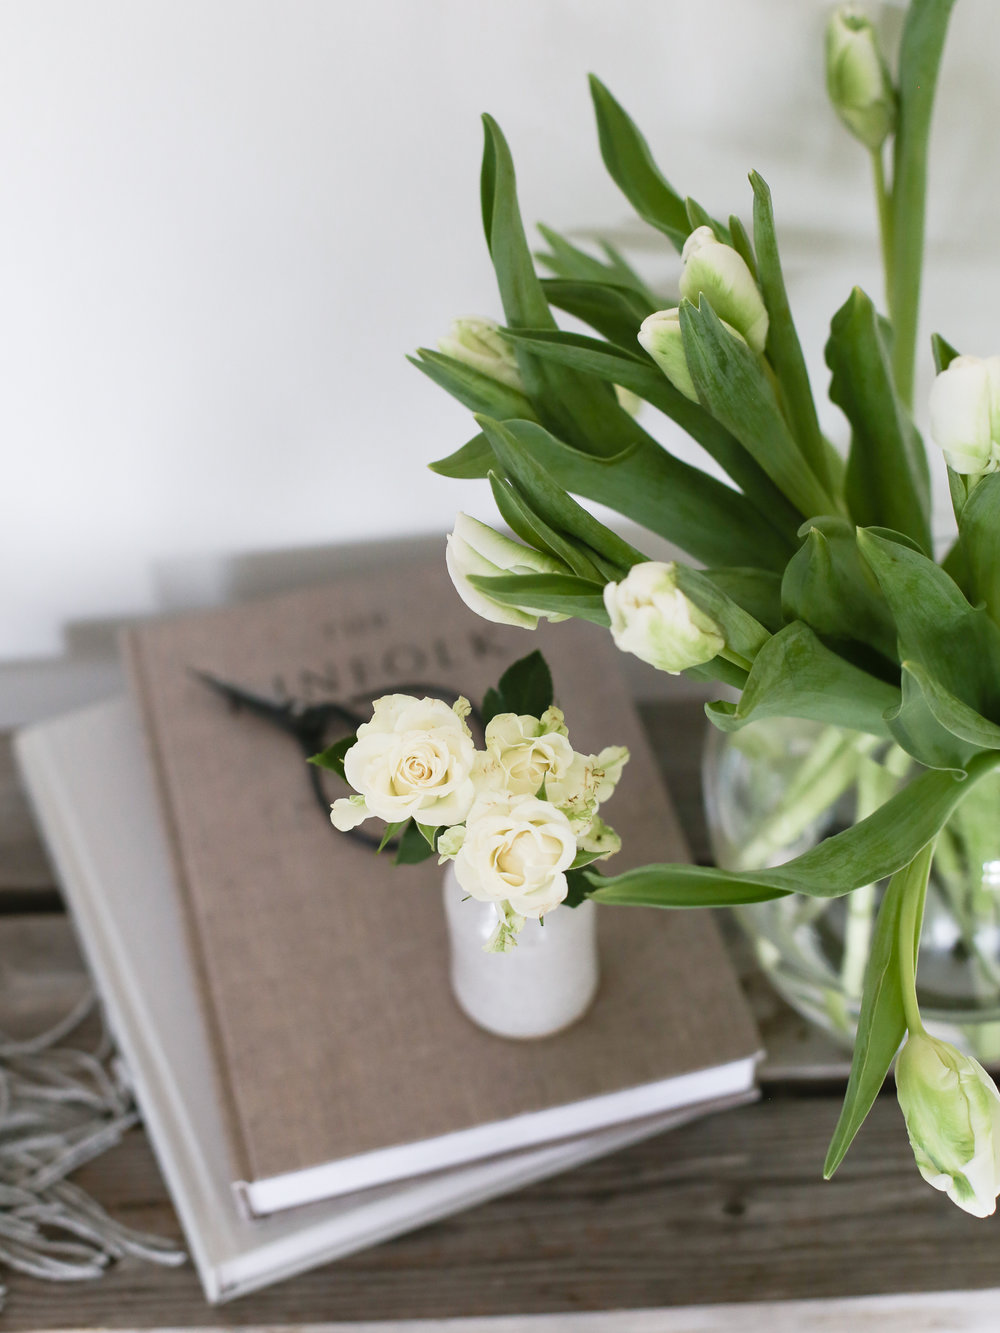 Tulips and spray roses in vases from The White Company | Design Hunter